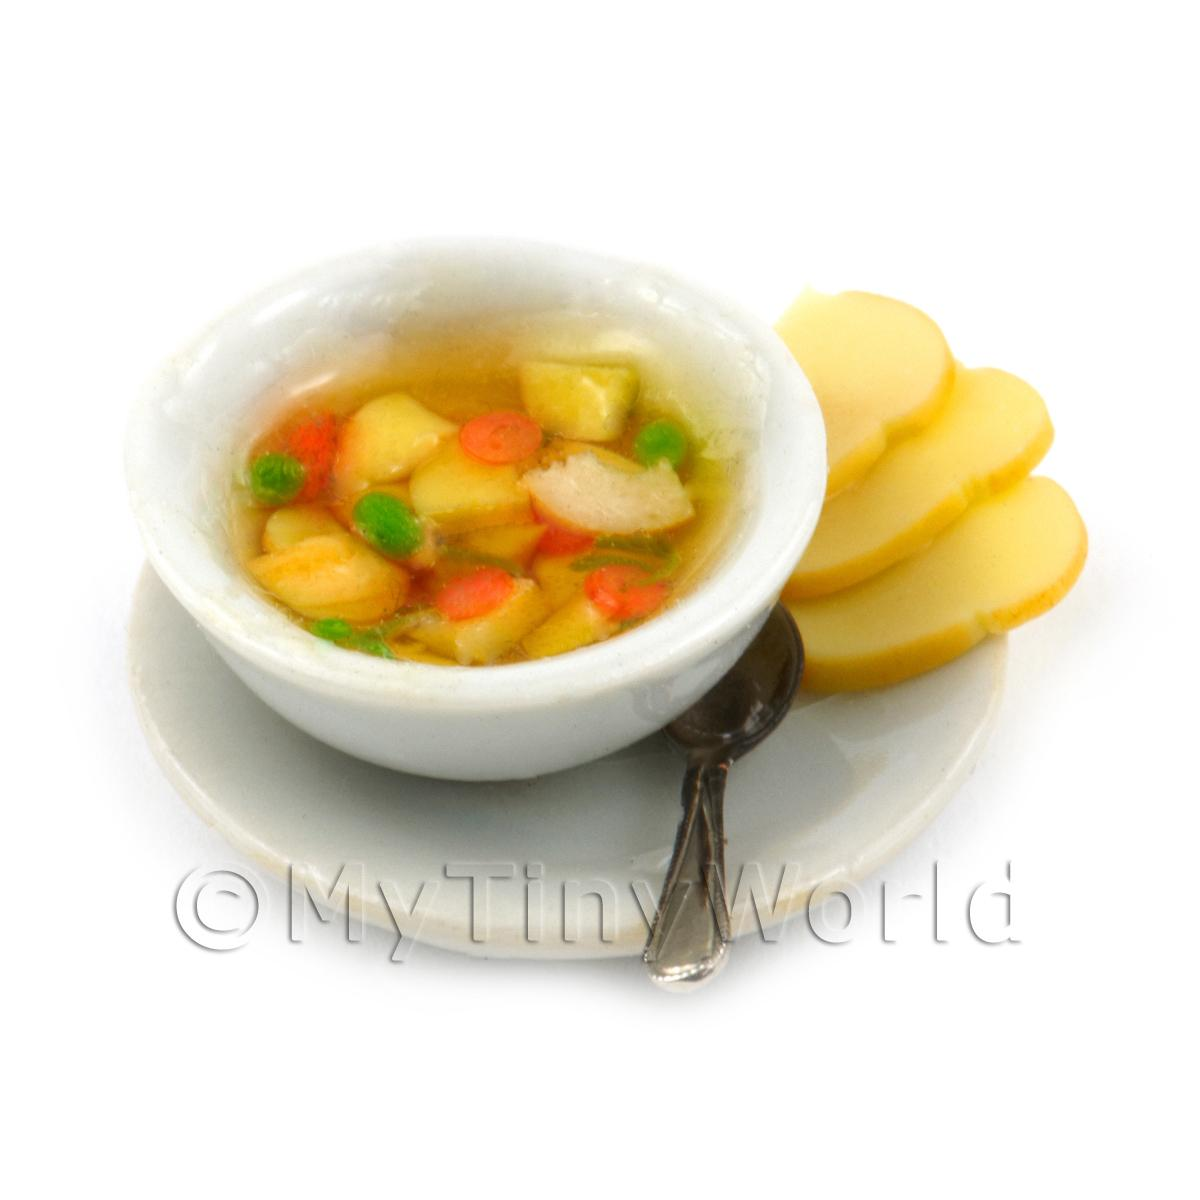 Dolls House Miniature Bowl Of Clear Vegetable Soup